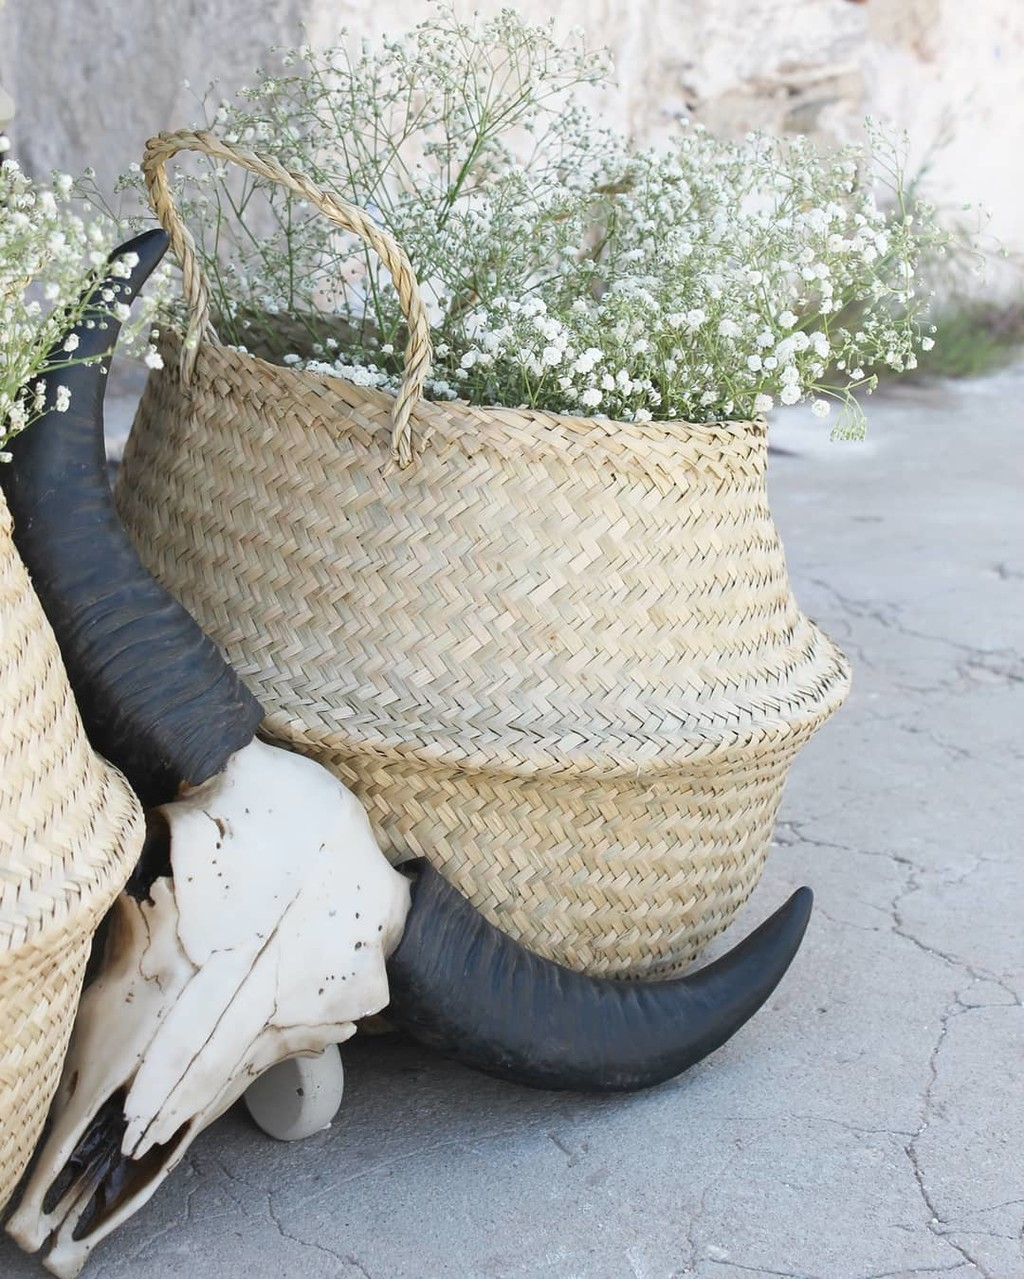 ▪boho vibes and flowers bloom in a seagrass basket are all we need to start our week▪